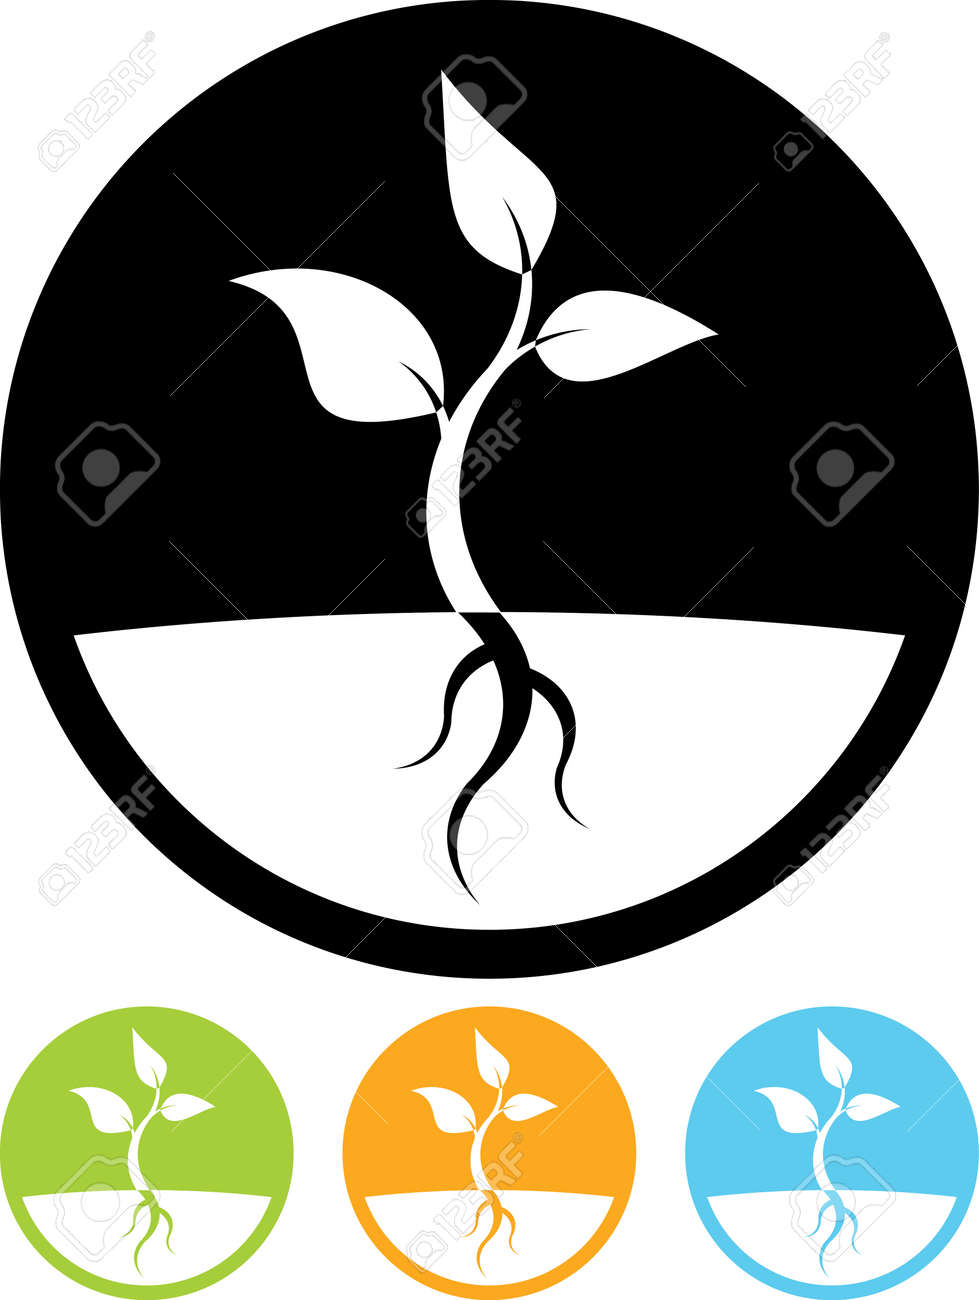 Plant sprout vector icon - 52831708